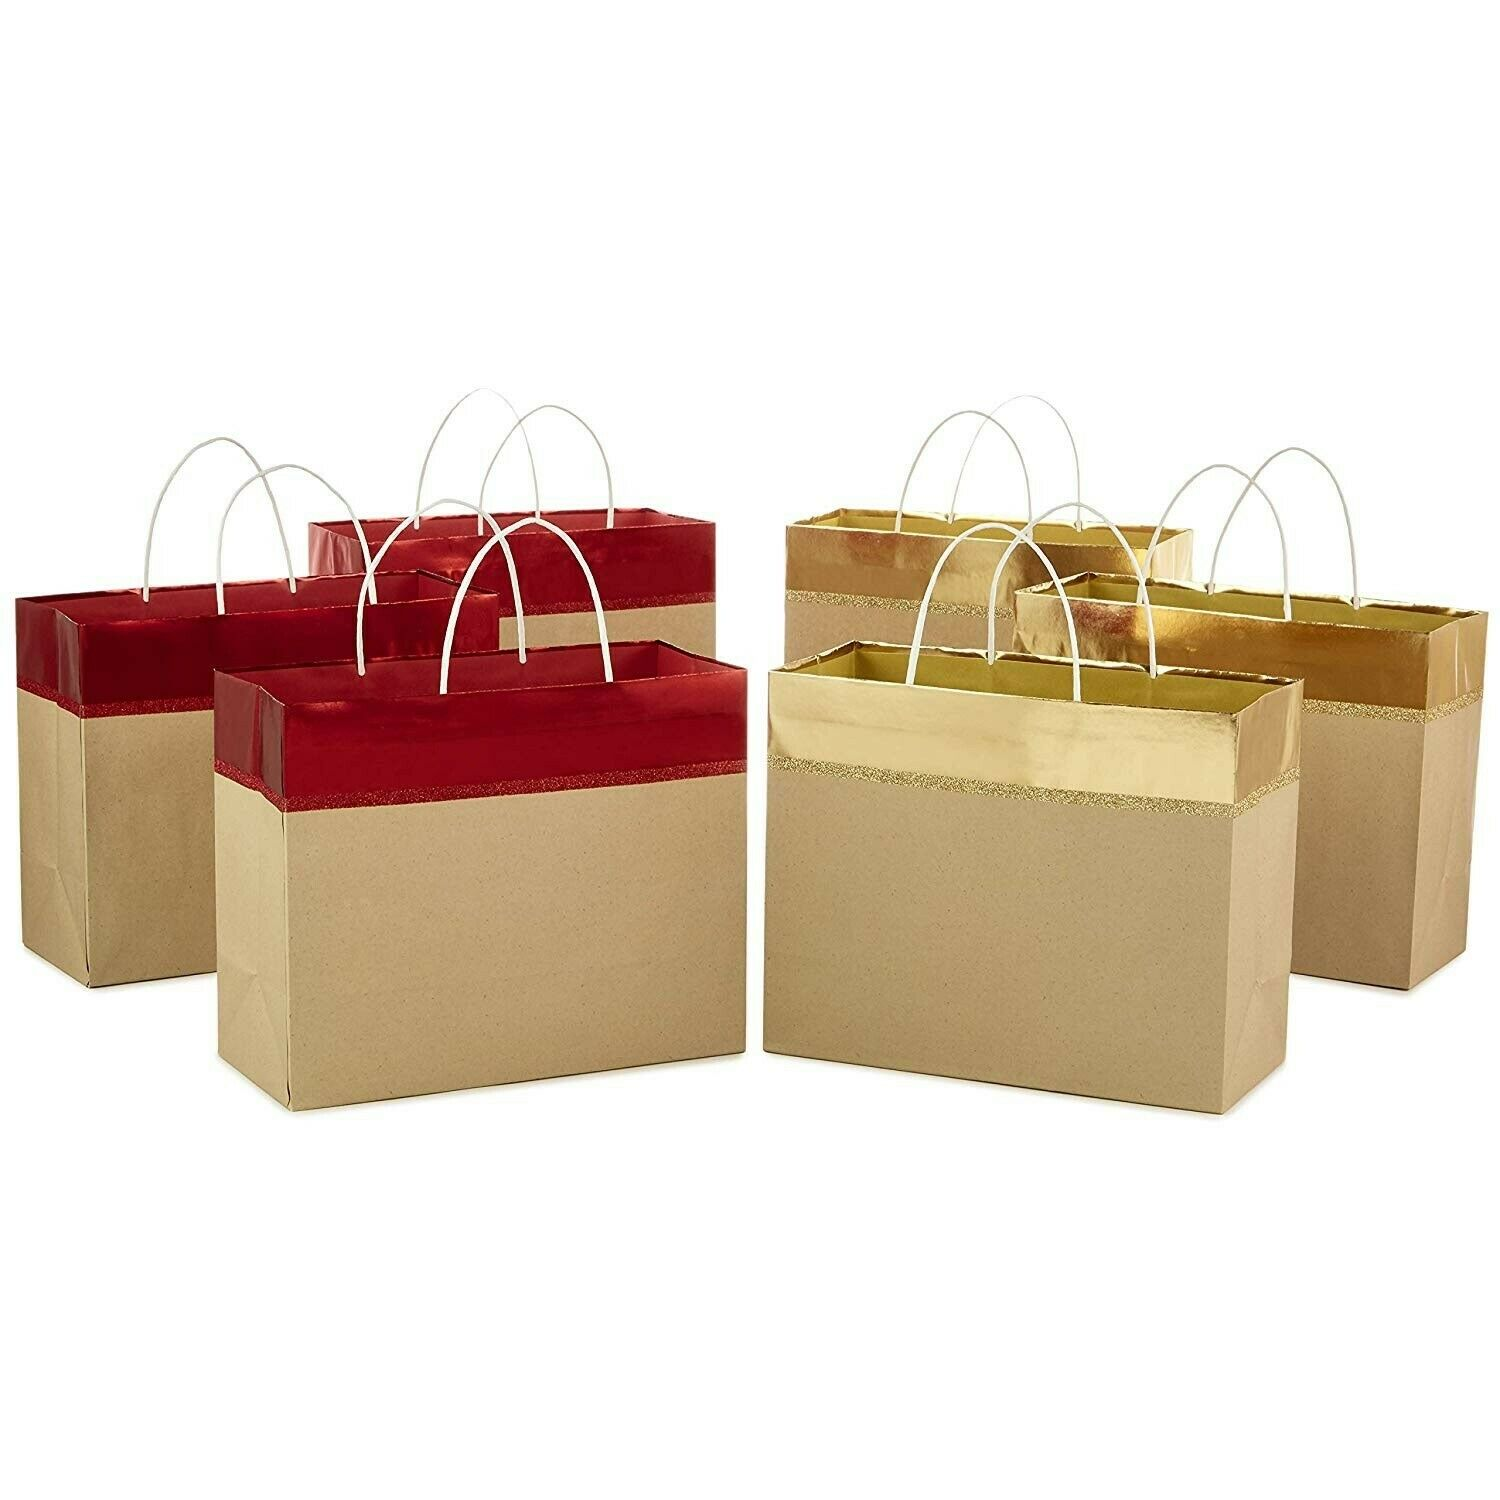 "Pack of 6 - Hallmark 10"" Large Christmas Gift Bags, Red and"